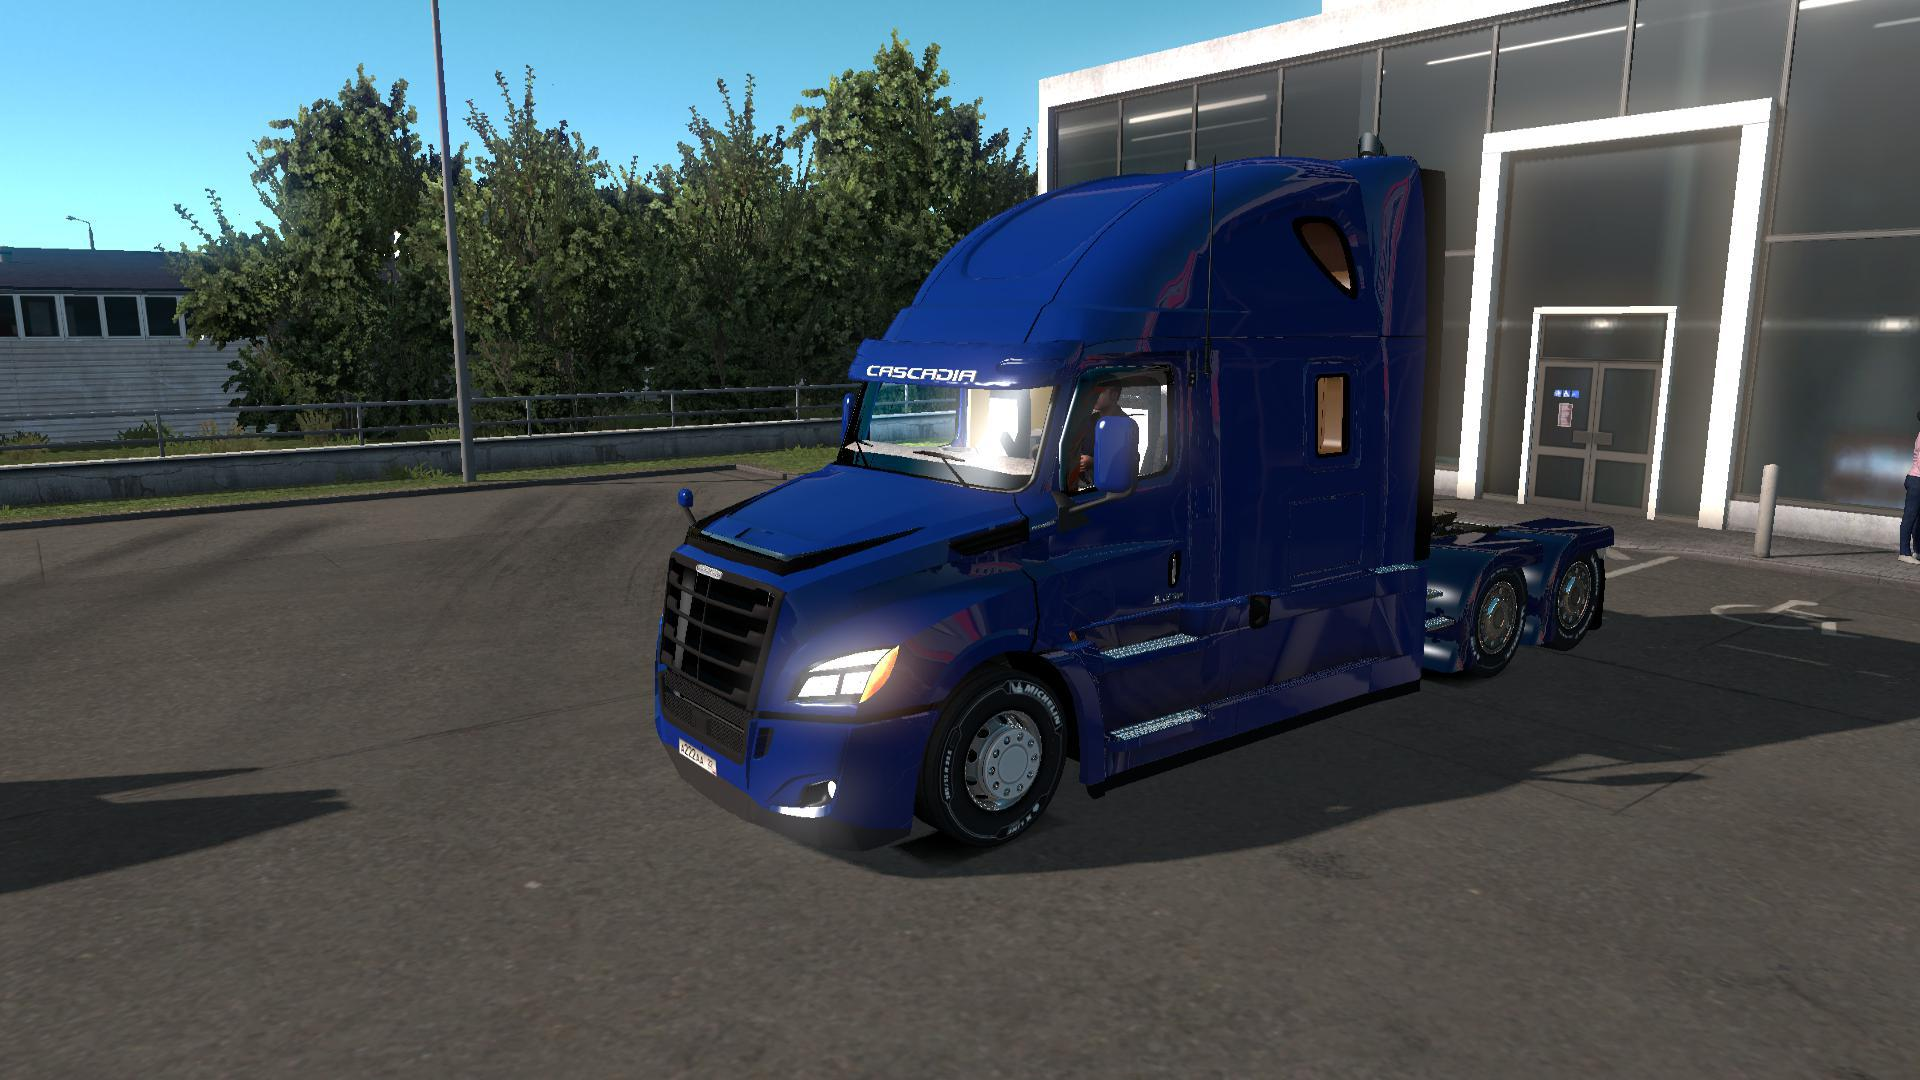 ETS2 - Freightliner Cascadia 2018 Truck V1.14 Fix (1.36.x)